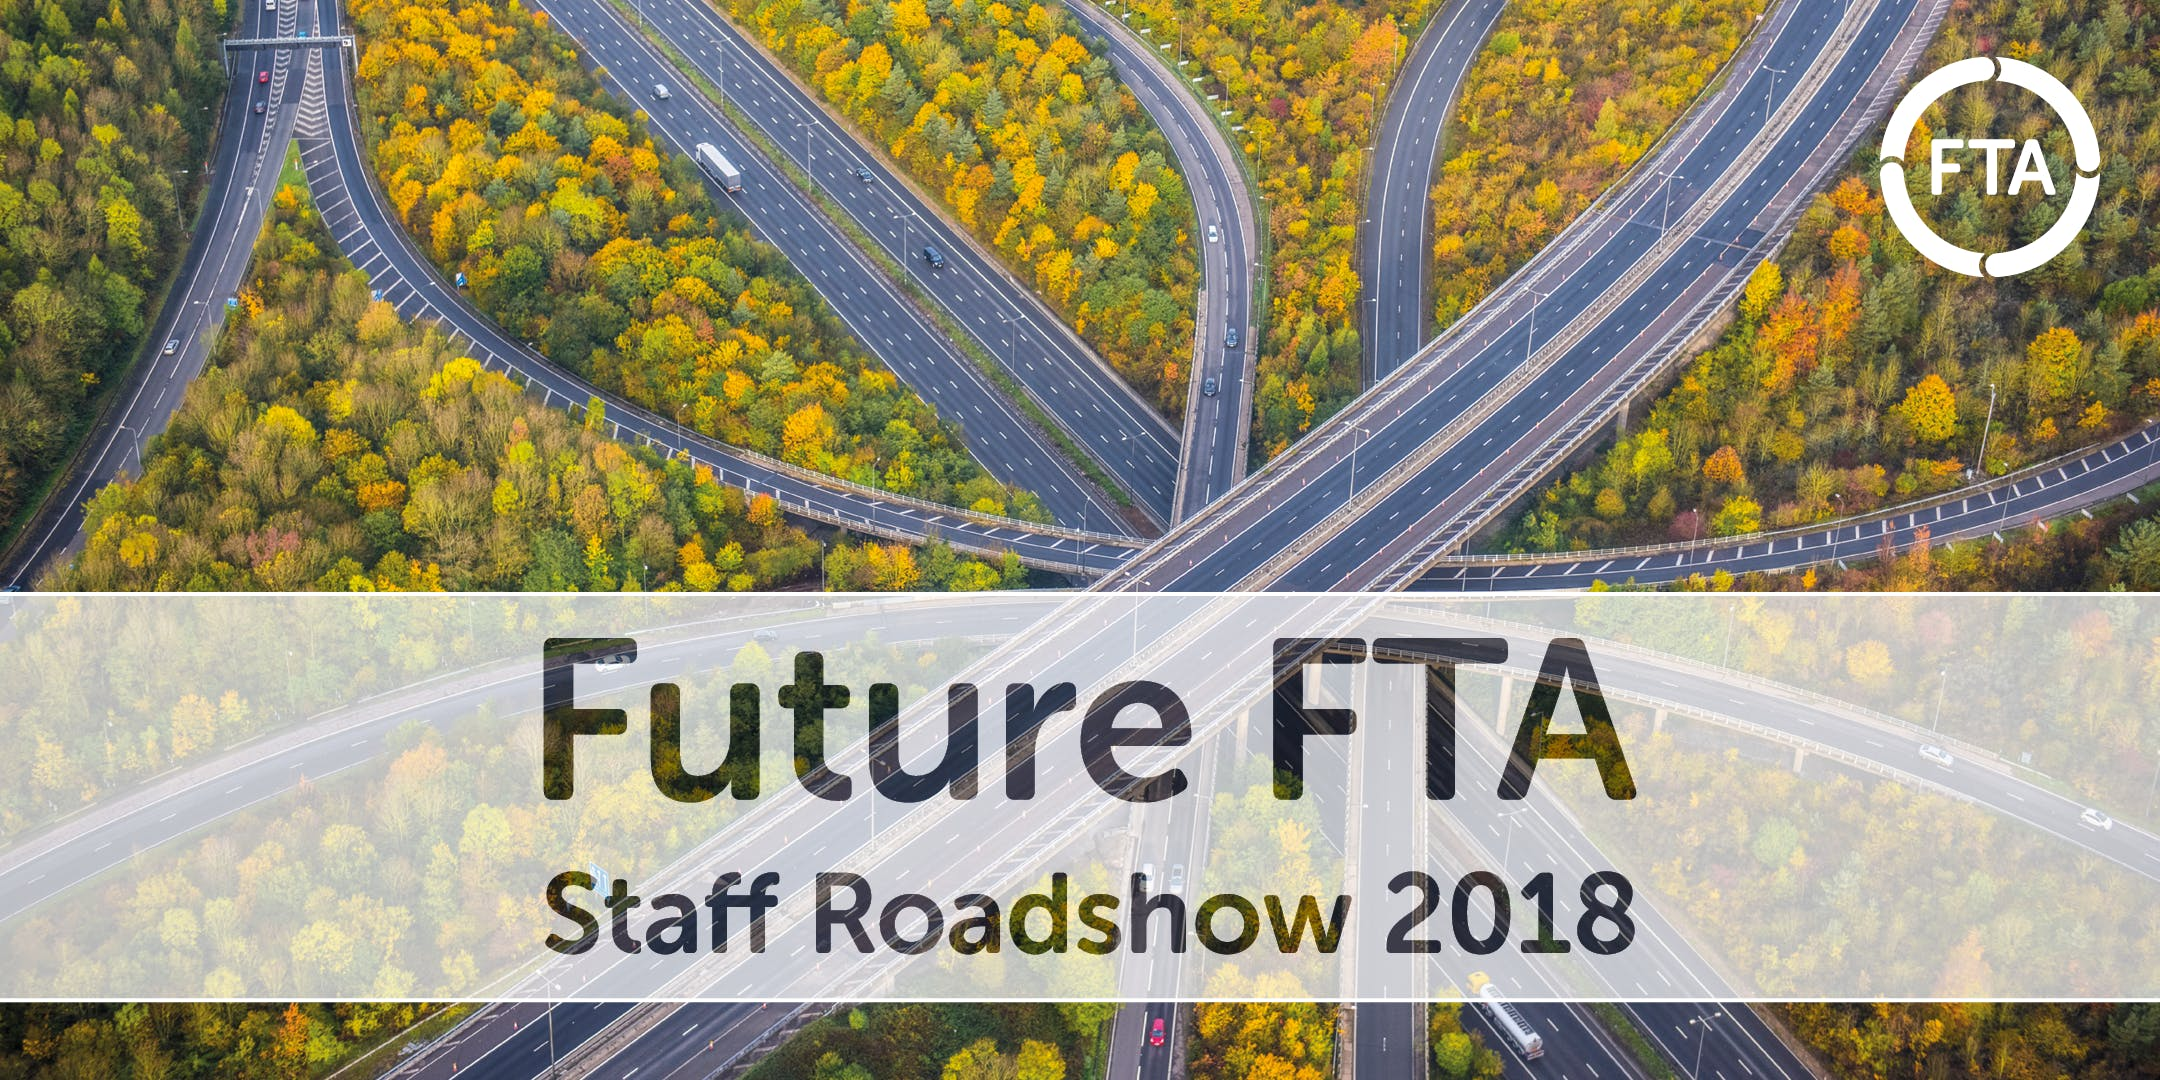 Future FTA - Staff Roadshow 2018